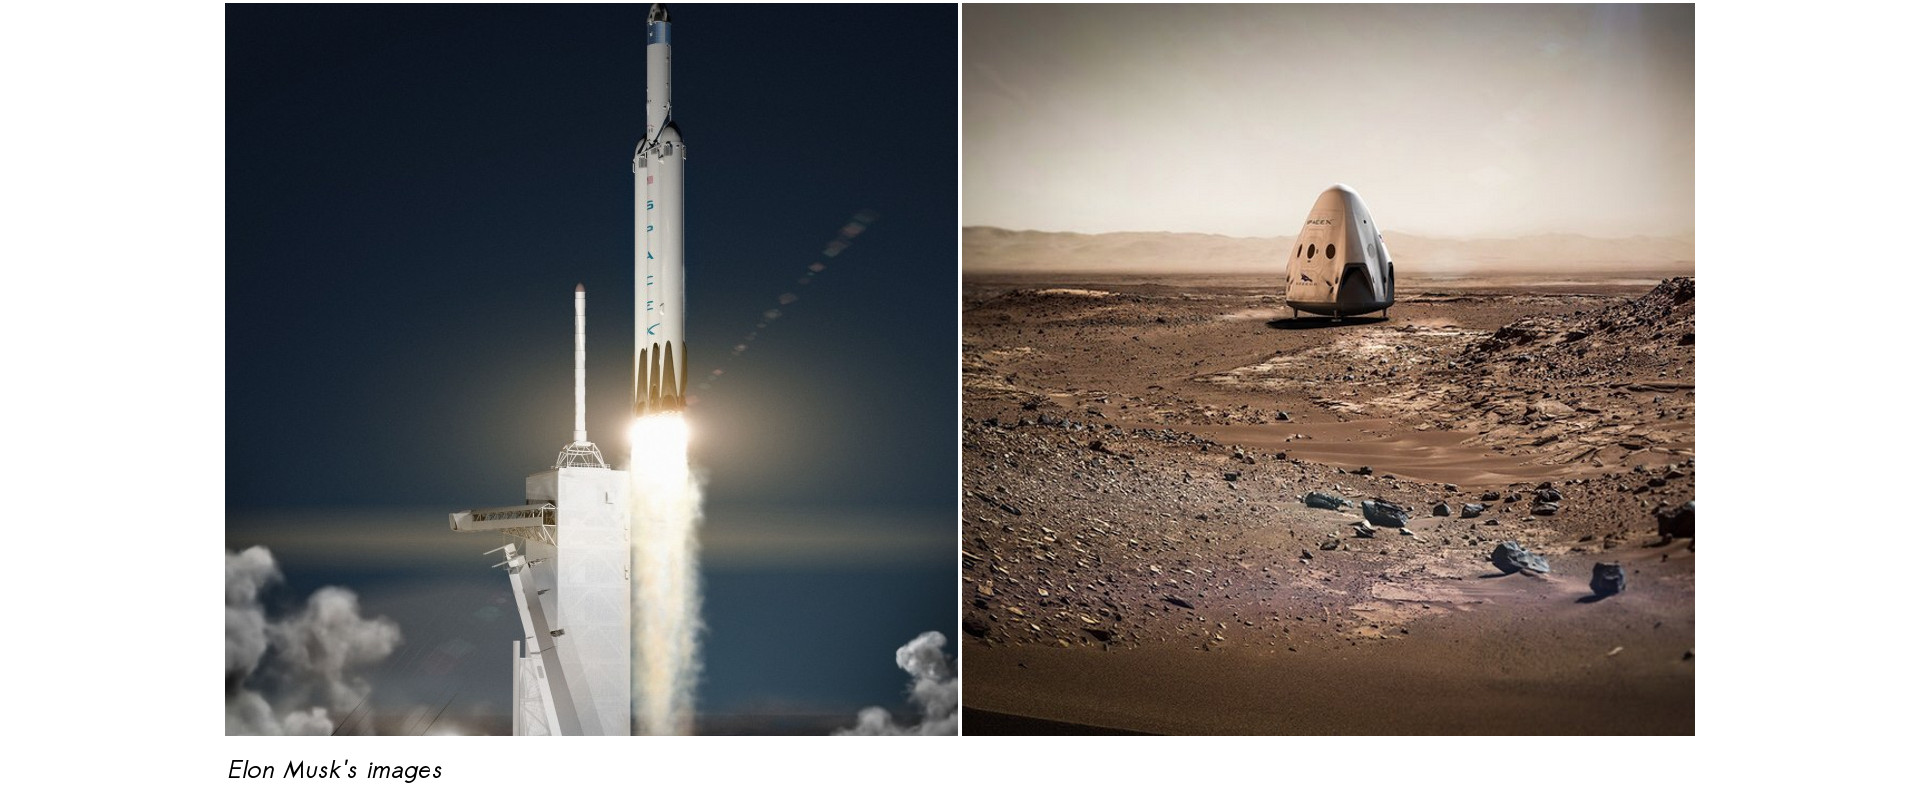 Elon Musk's Spacex to Mars in 2018